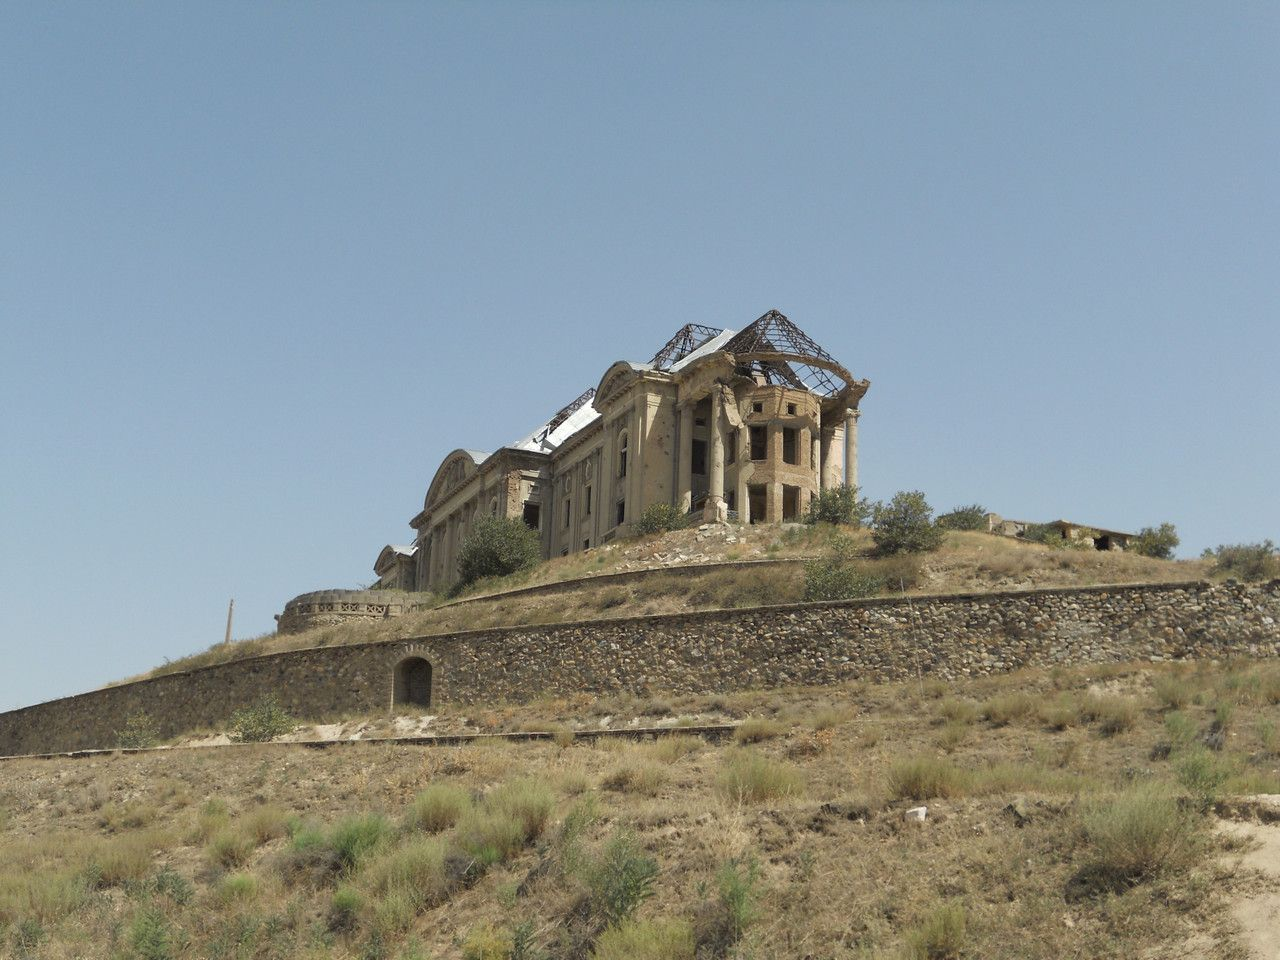 The Queens Palace - Kabul